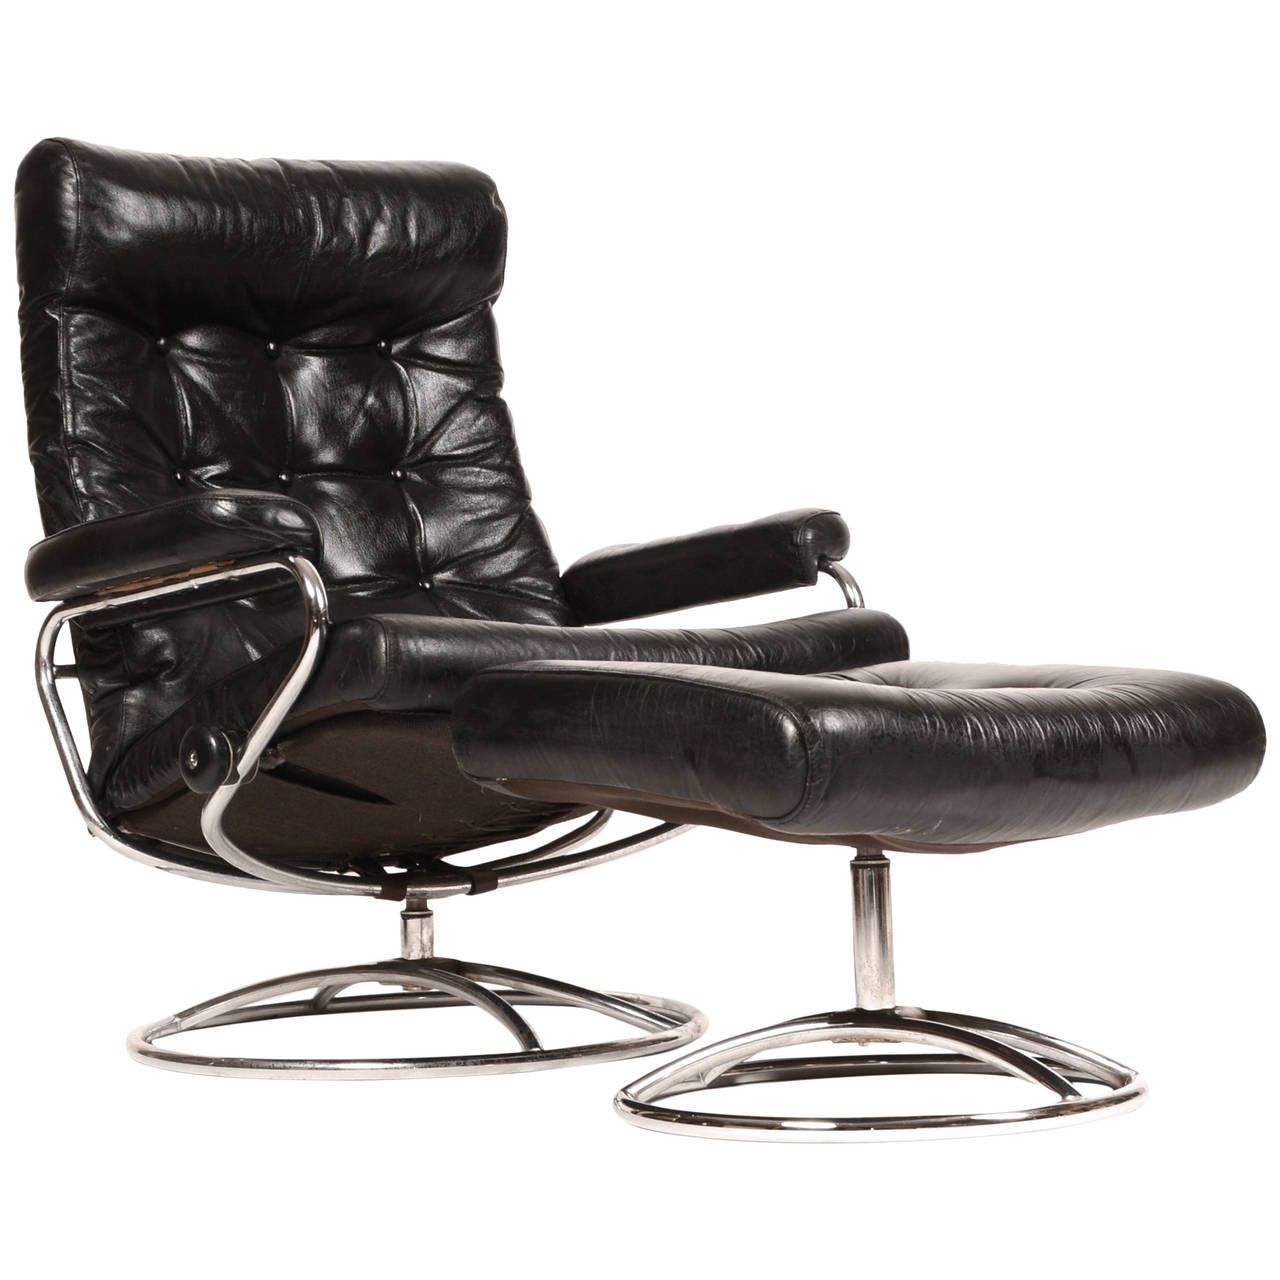 Stressless Sofa Ottoman Reclining Stressless Lounge Chair And Ottoman By Ekornes